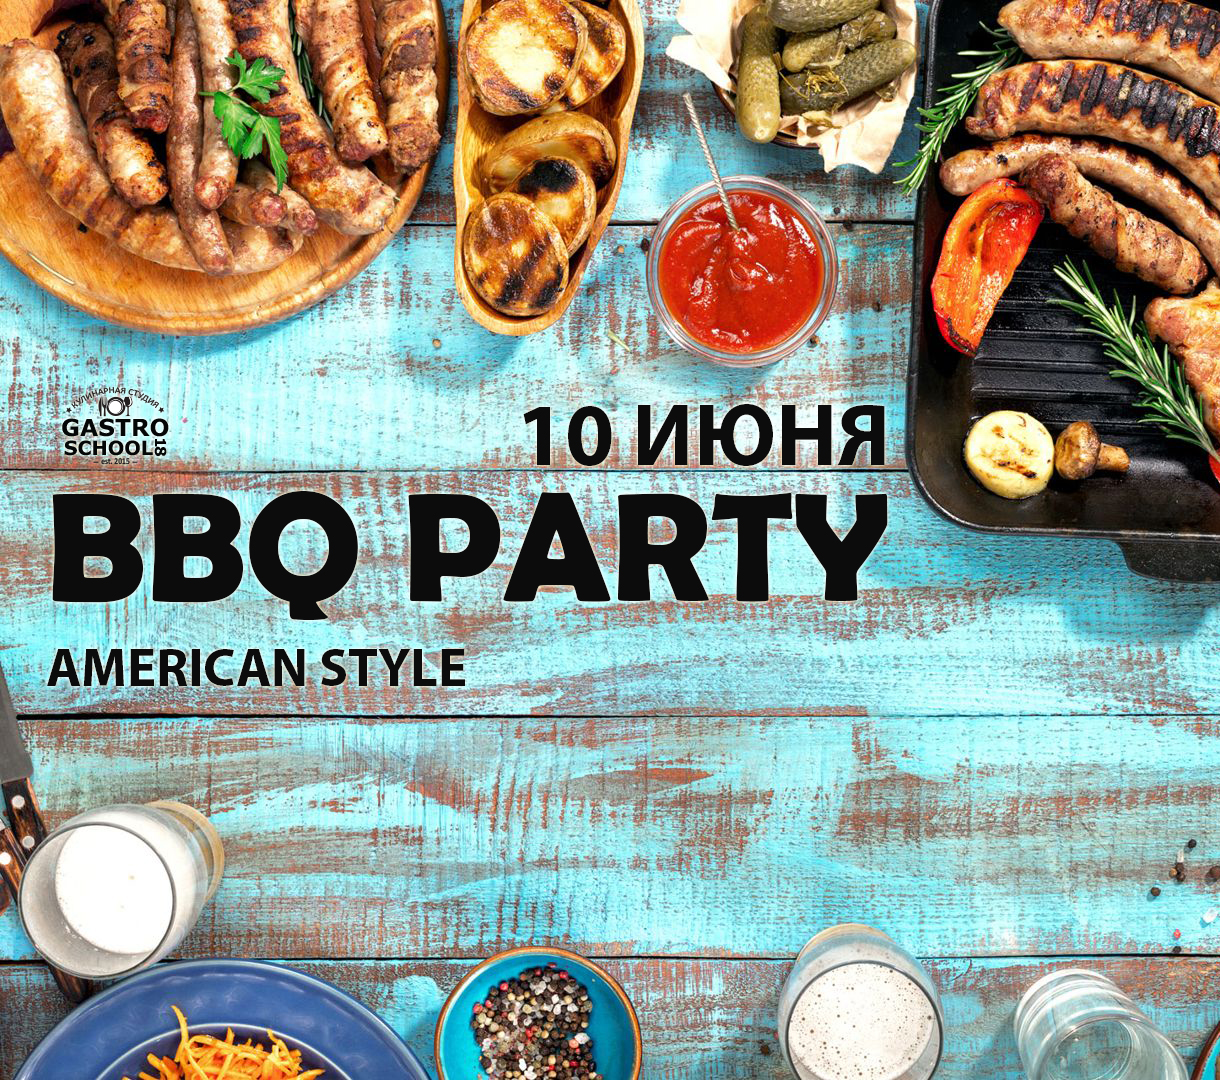 BBQPARTY 10june 1